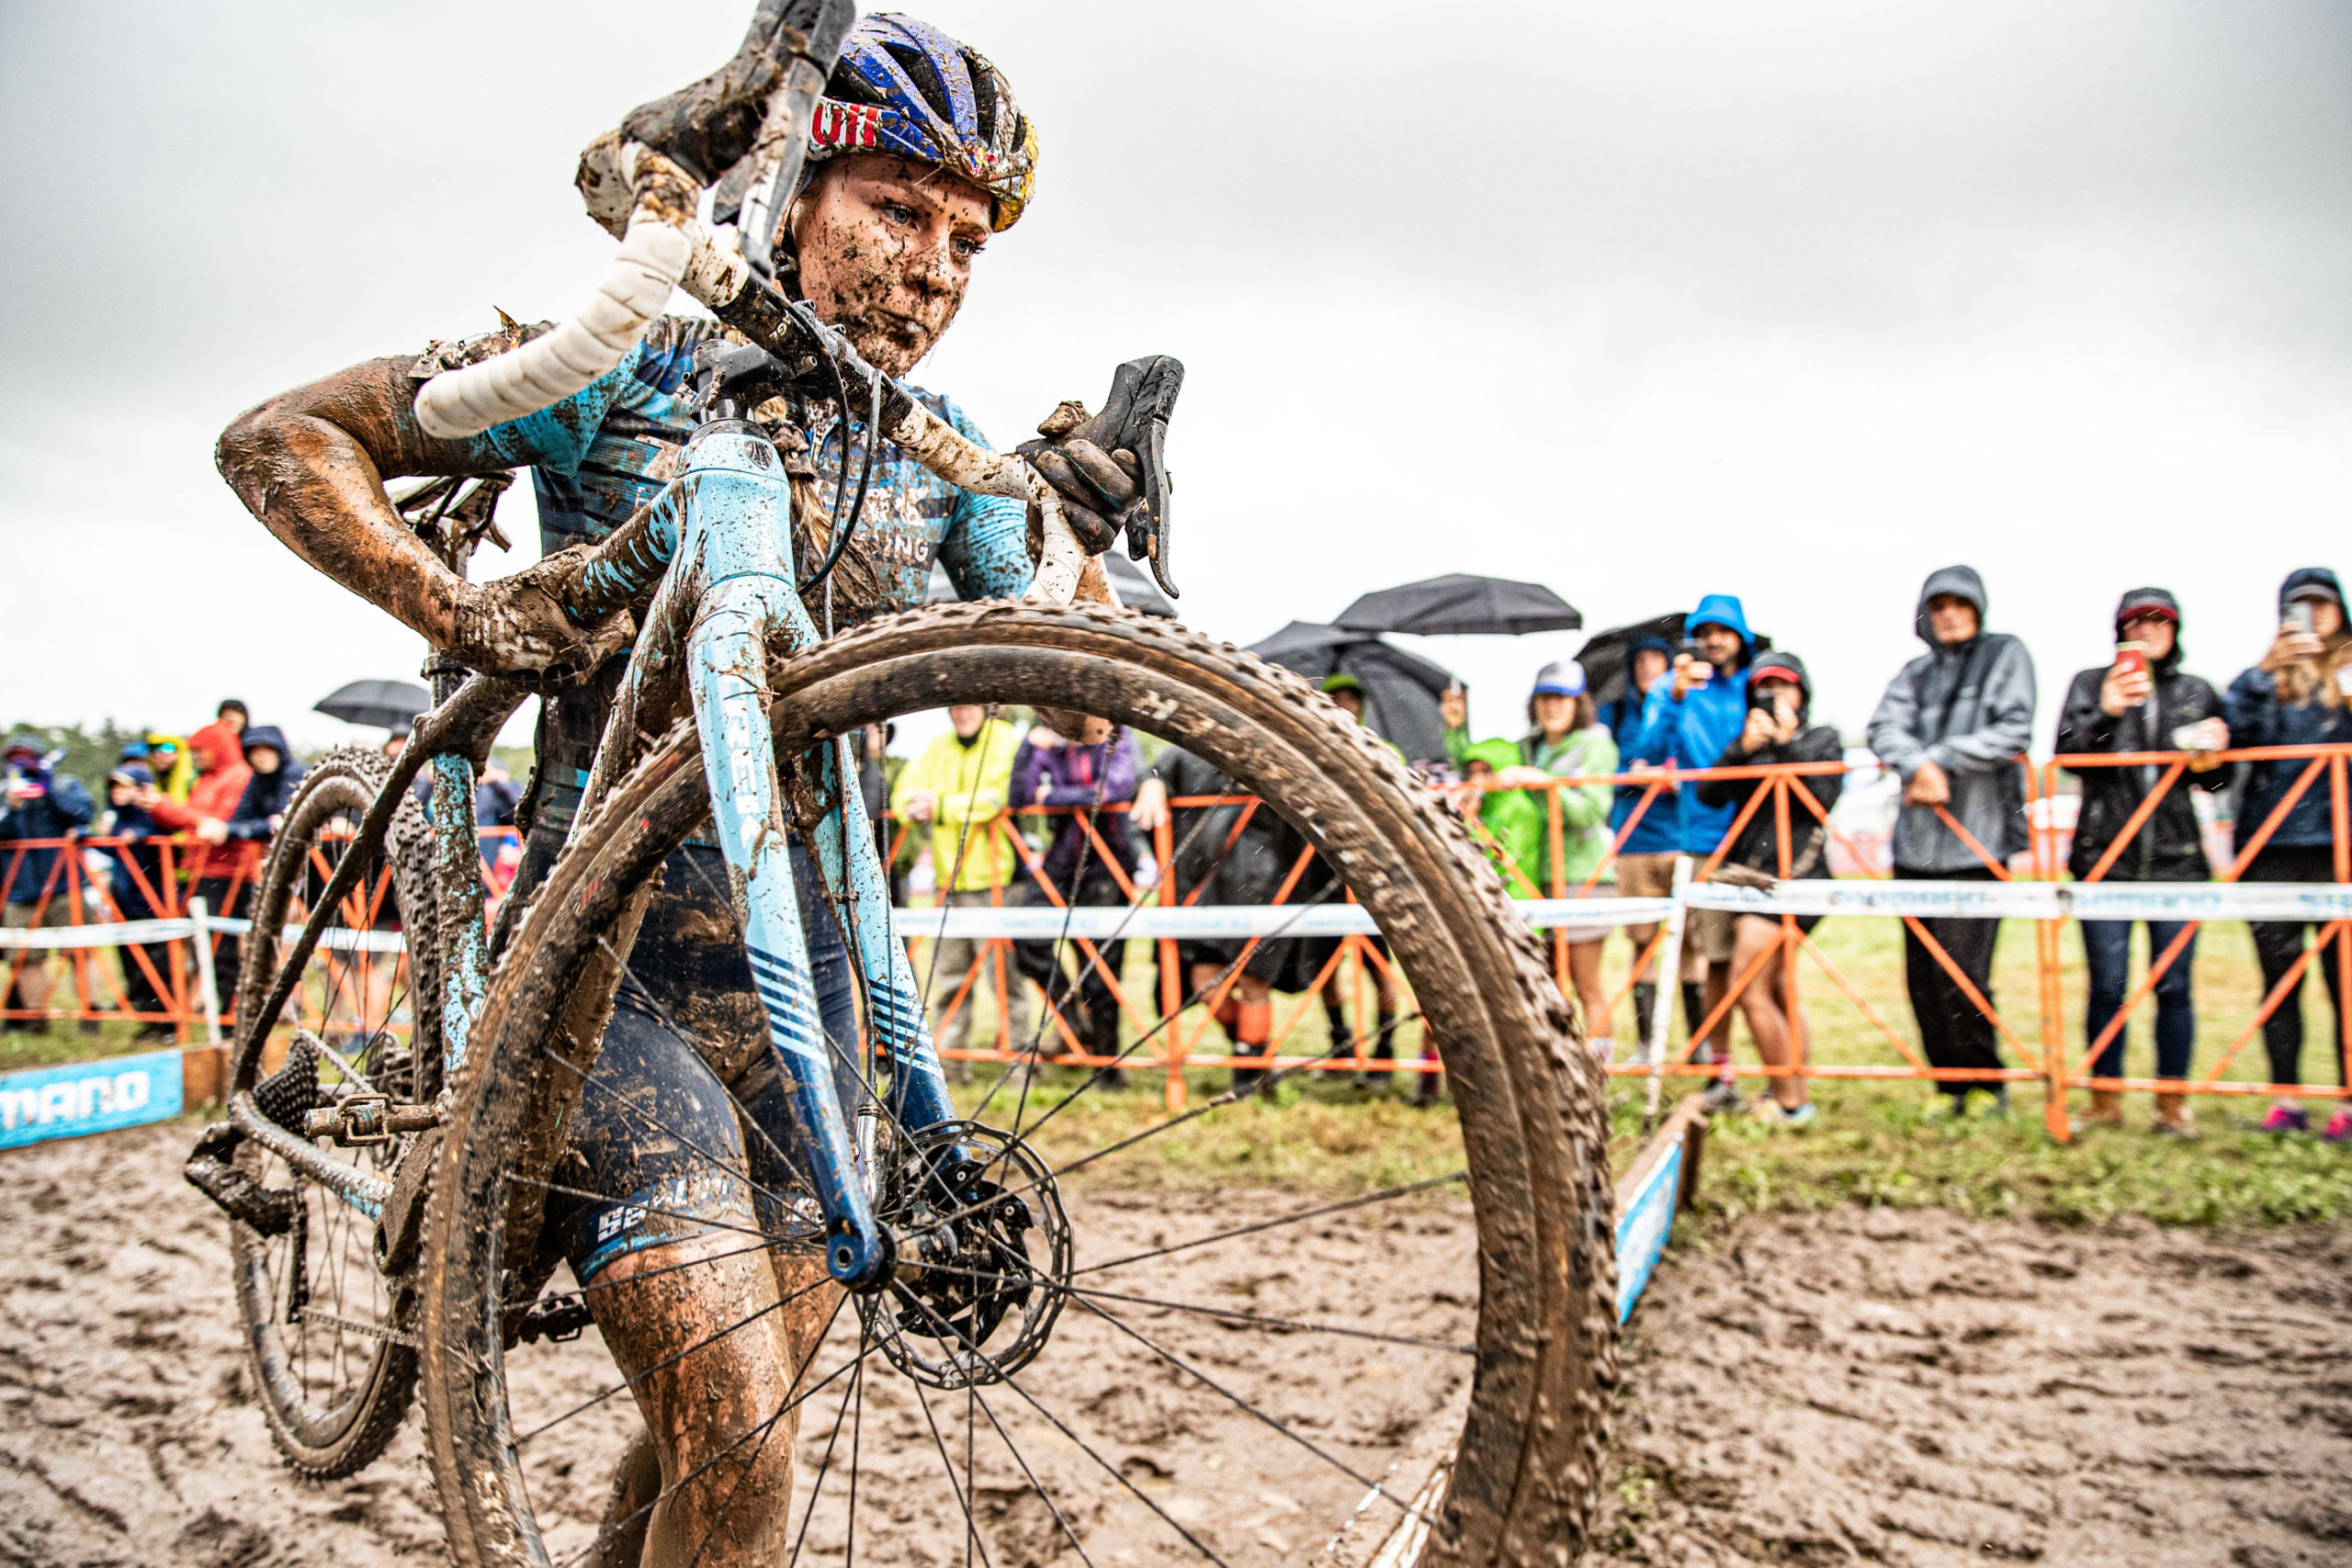 Sea Otter Classic 2020 & Bicycle Leadership Conference cancelled, Sea Otter Play goes virtual + more postponed events